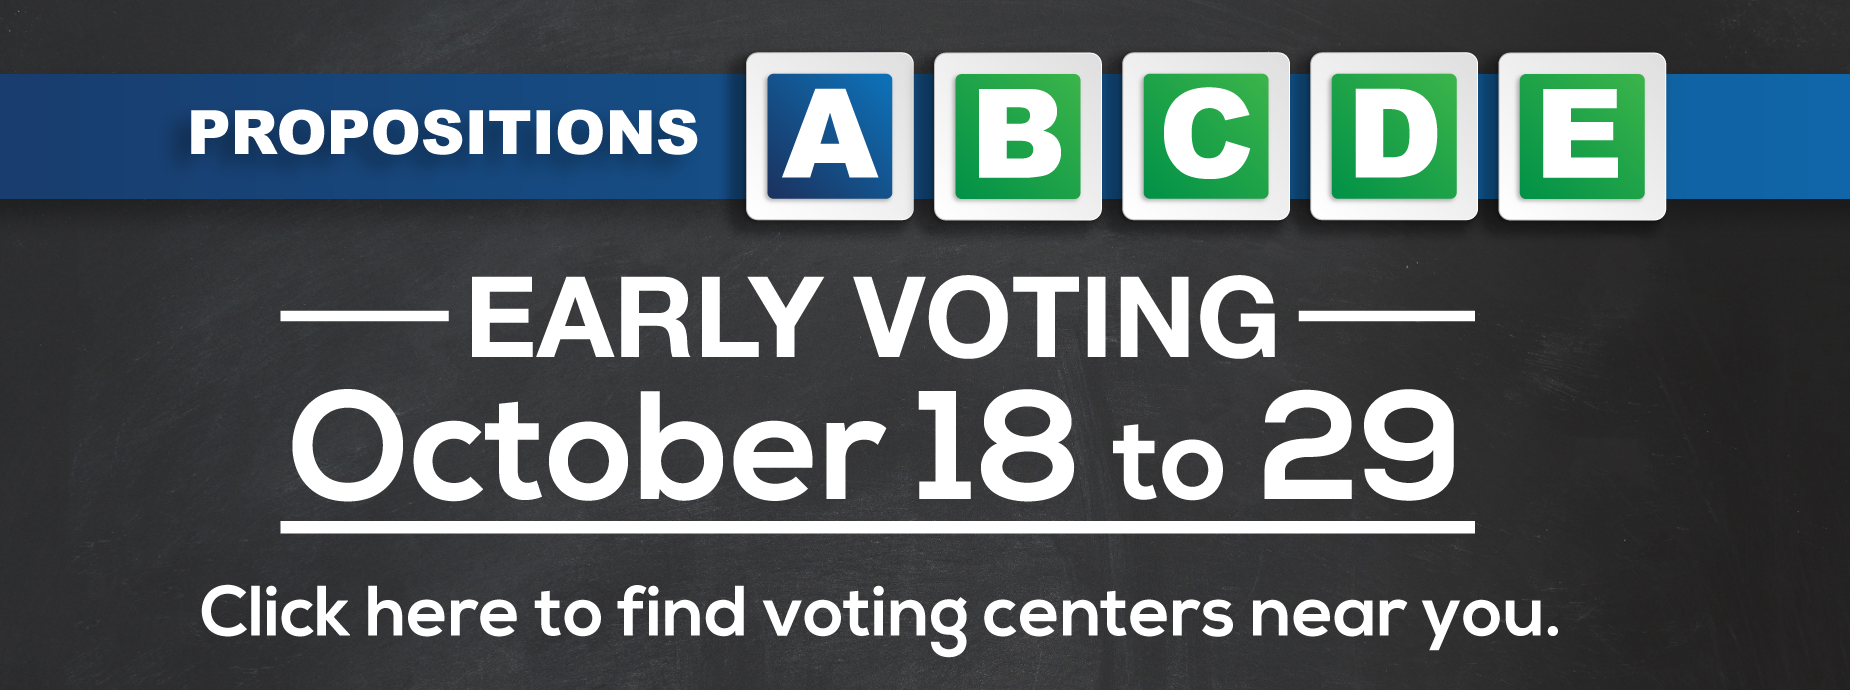 Early Voting October 18-29